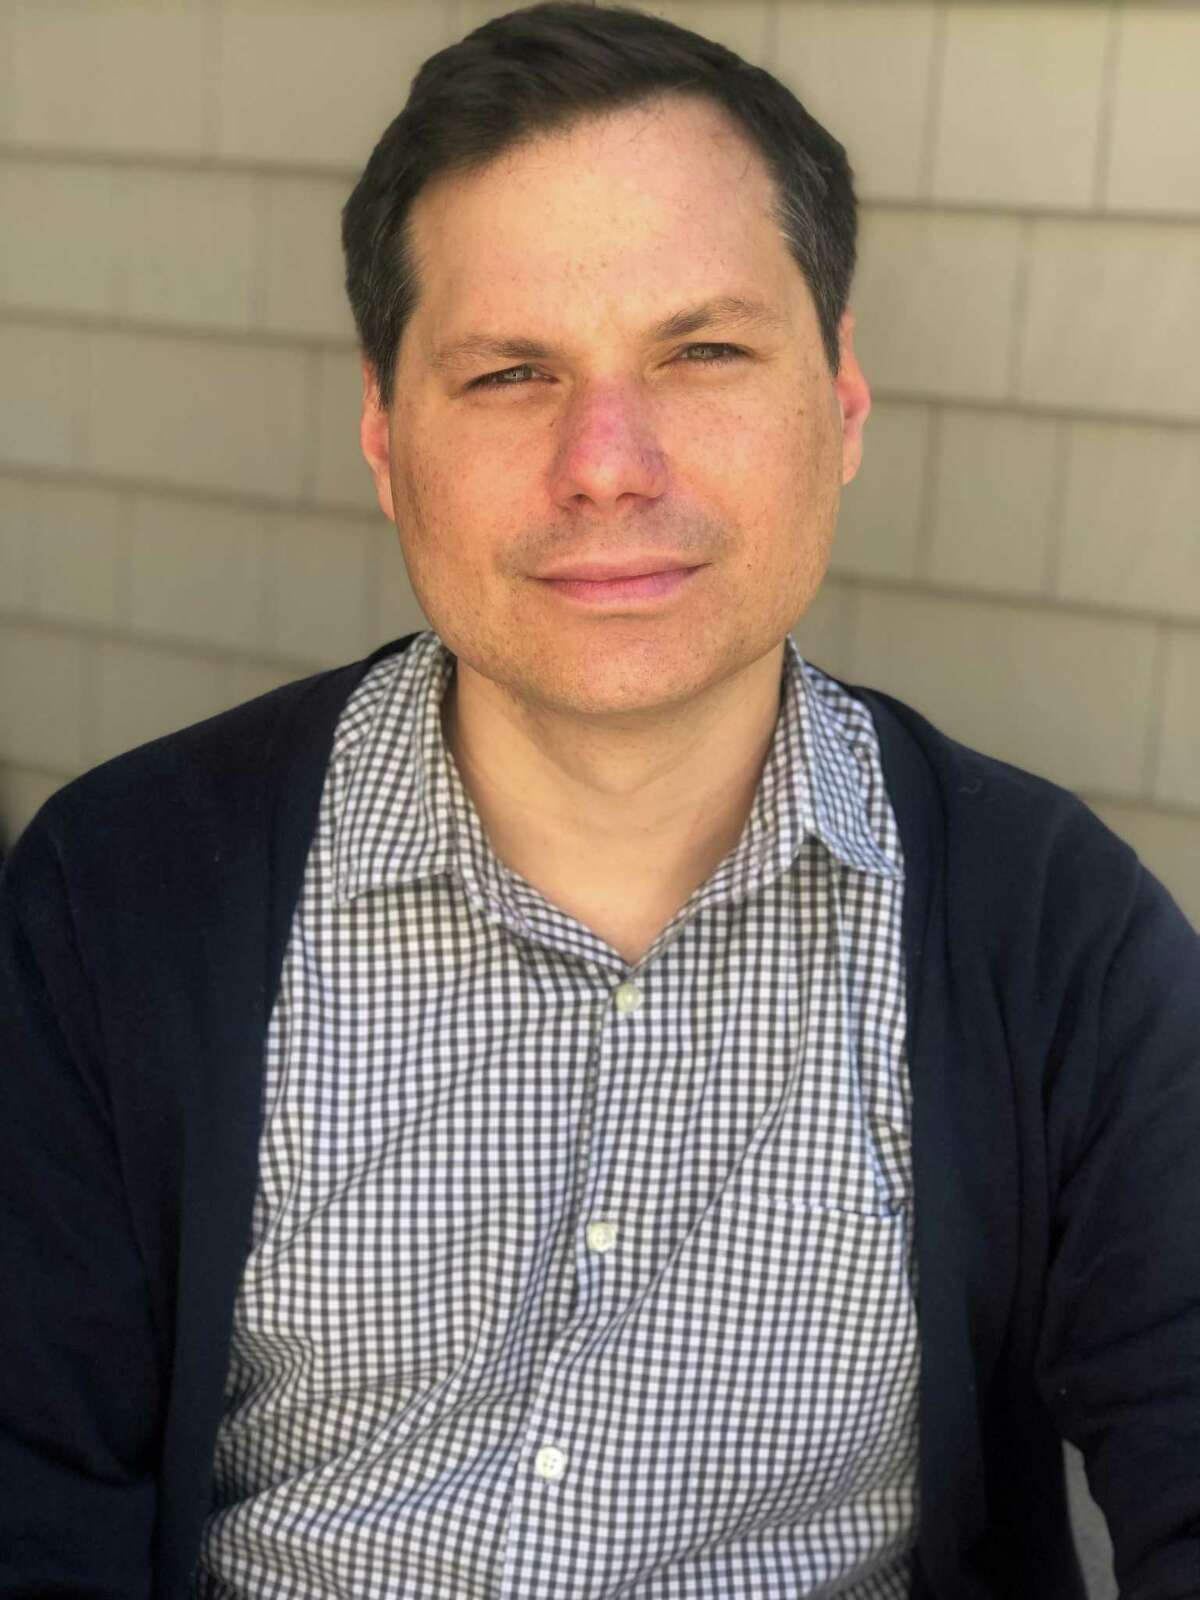 Michael Ian Black asks men to think about the importance and strength it takes to be vulnerable in his new book.